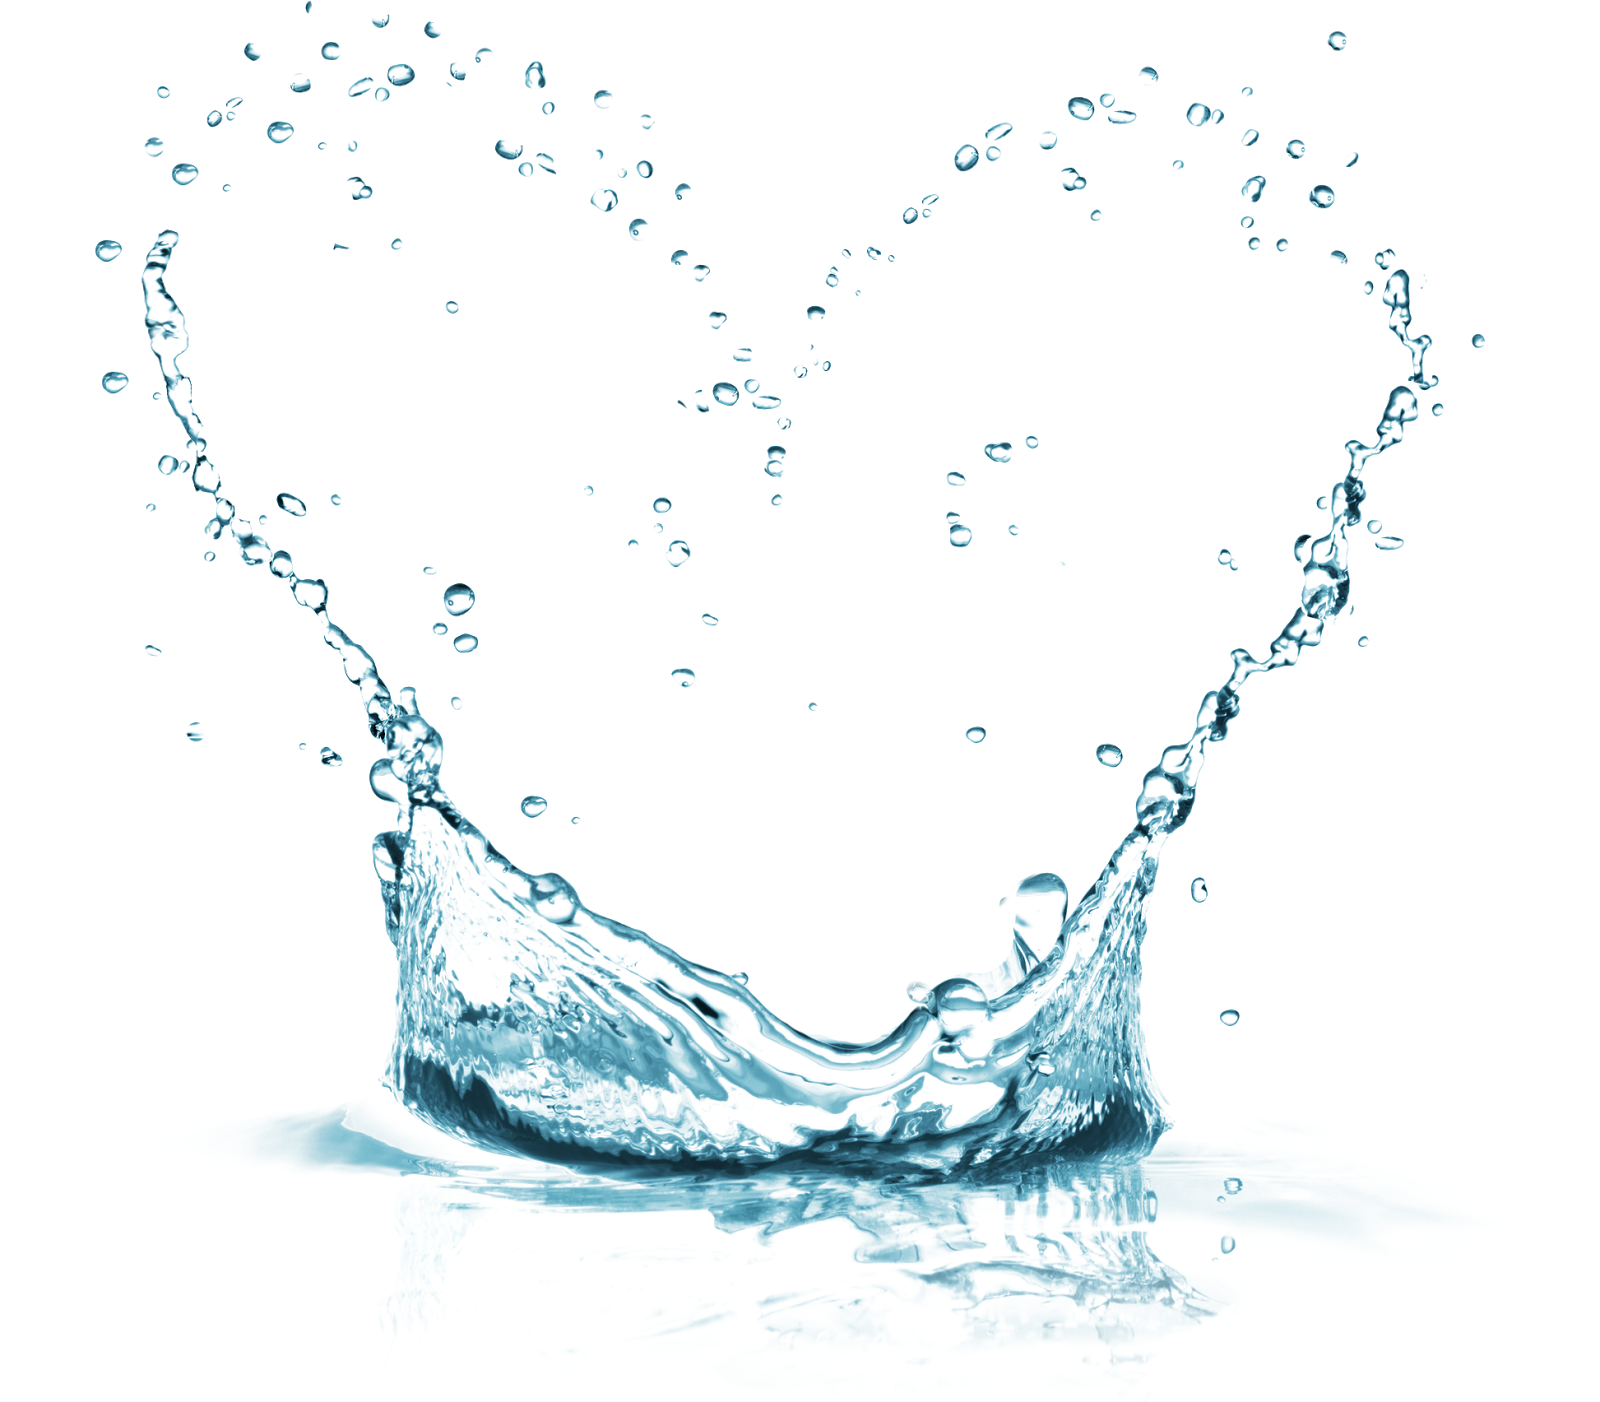 Png transparent images all. Water clipart shape